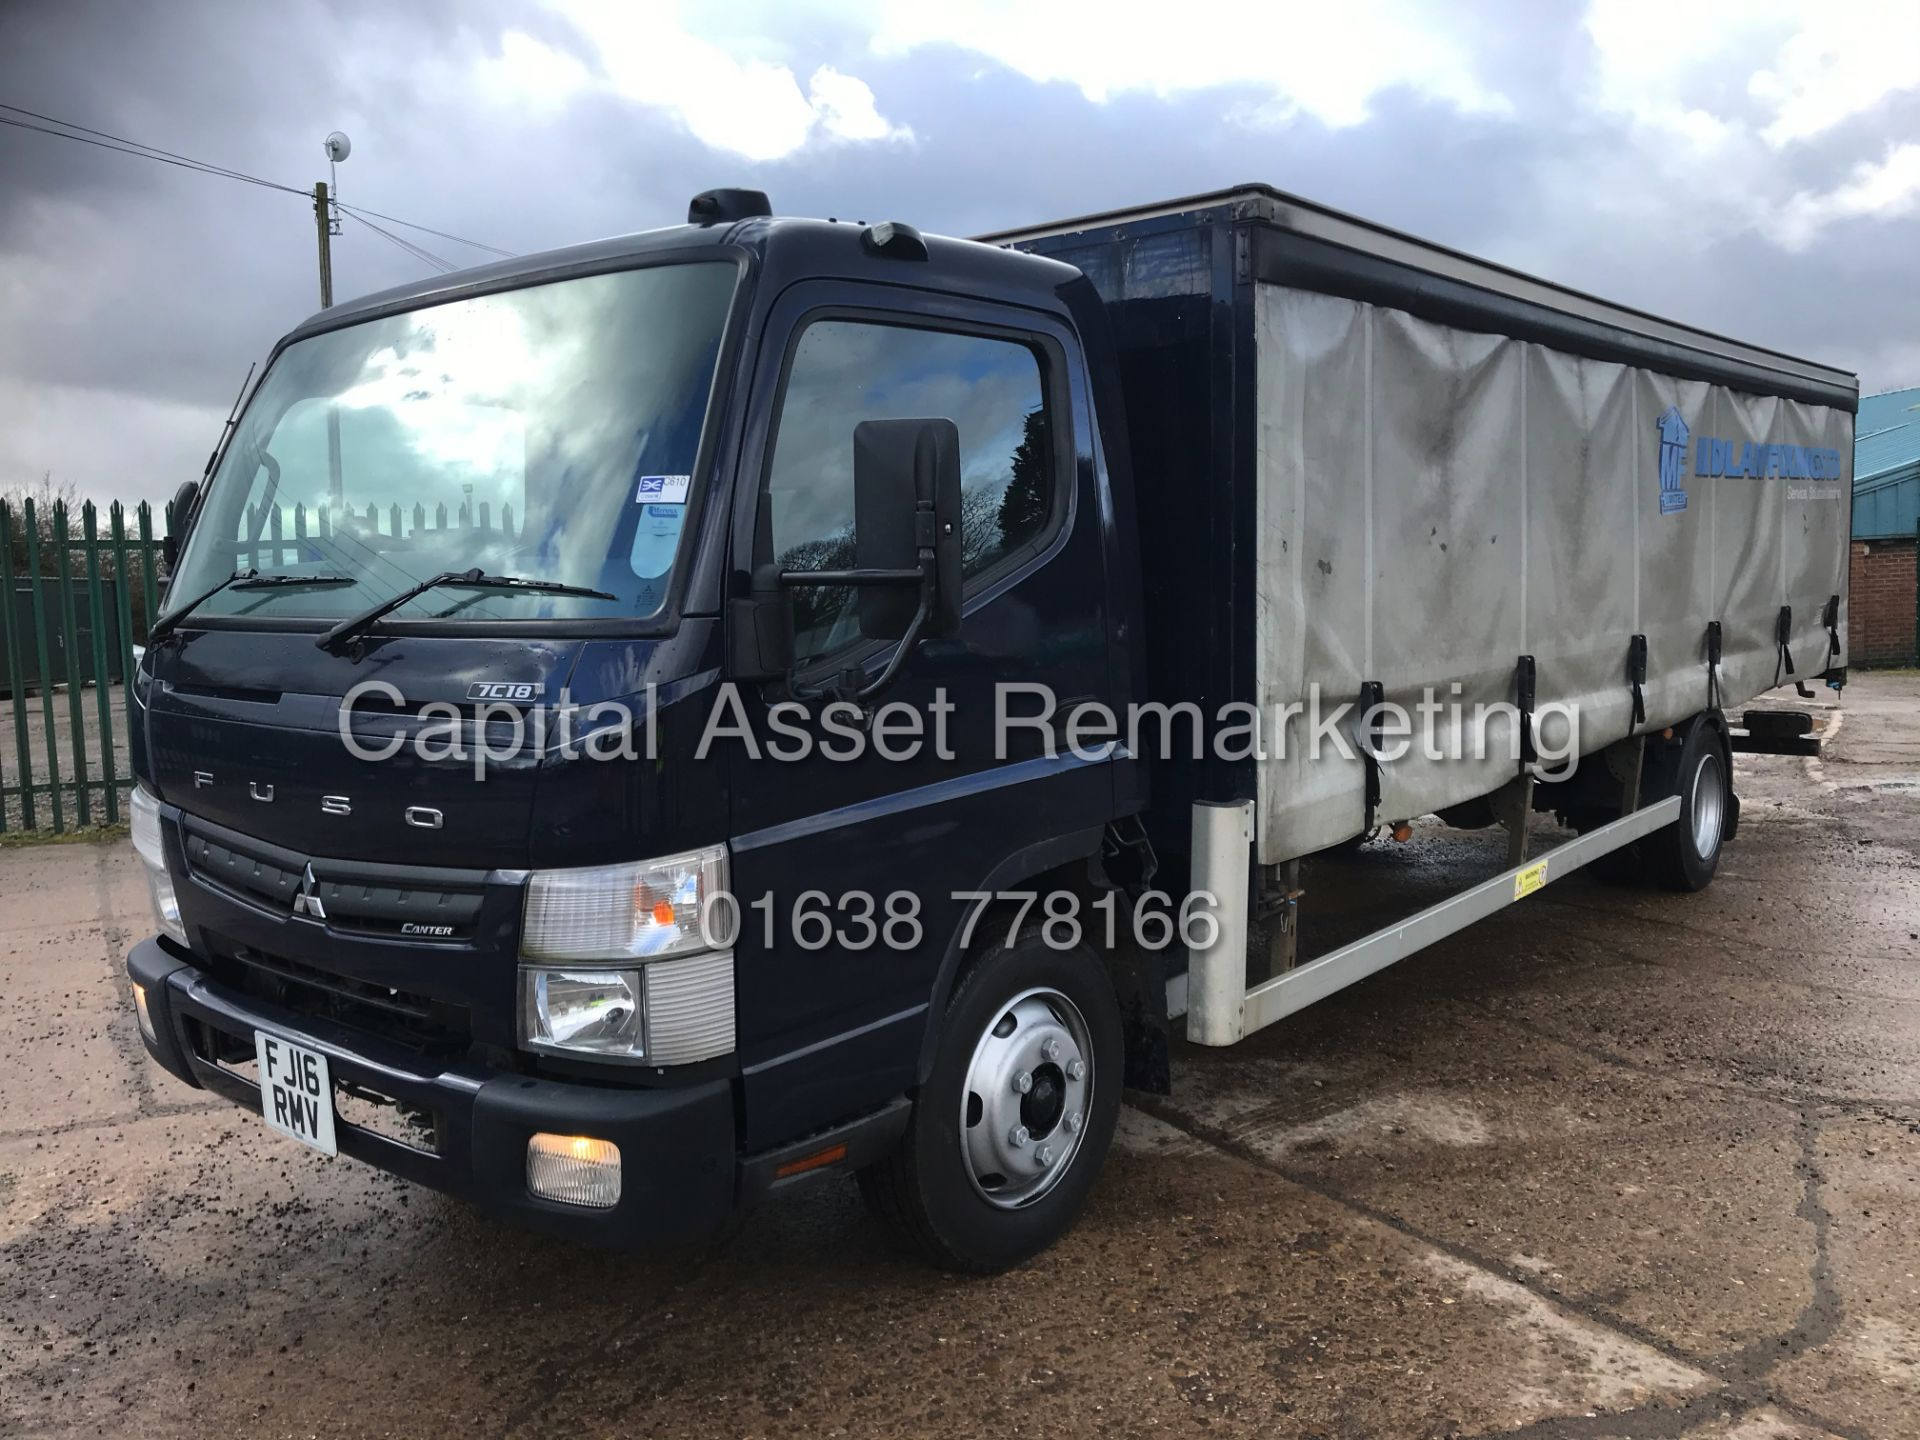 (ON SALE) MITSUBISHI FUSO CANTER 7C18 (16 REG) 1 OWNER *EURO 6* AD-BLUE - 4 WAY CAMERA SYSTEM - Image 3 of 20